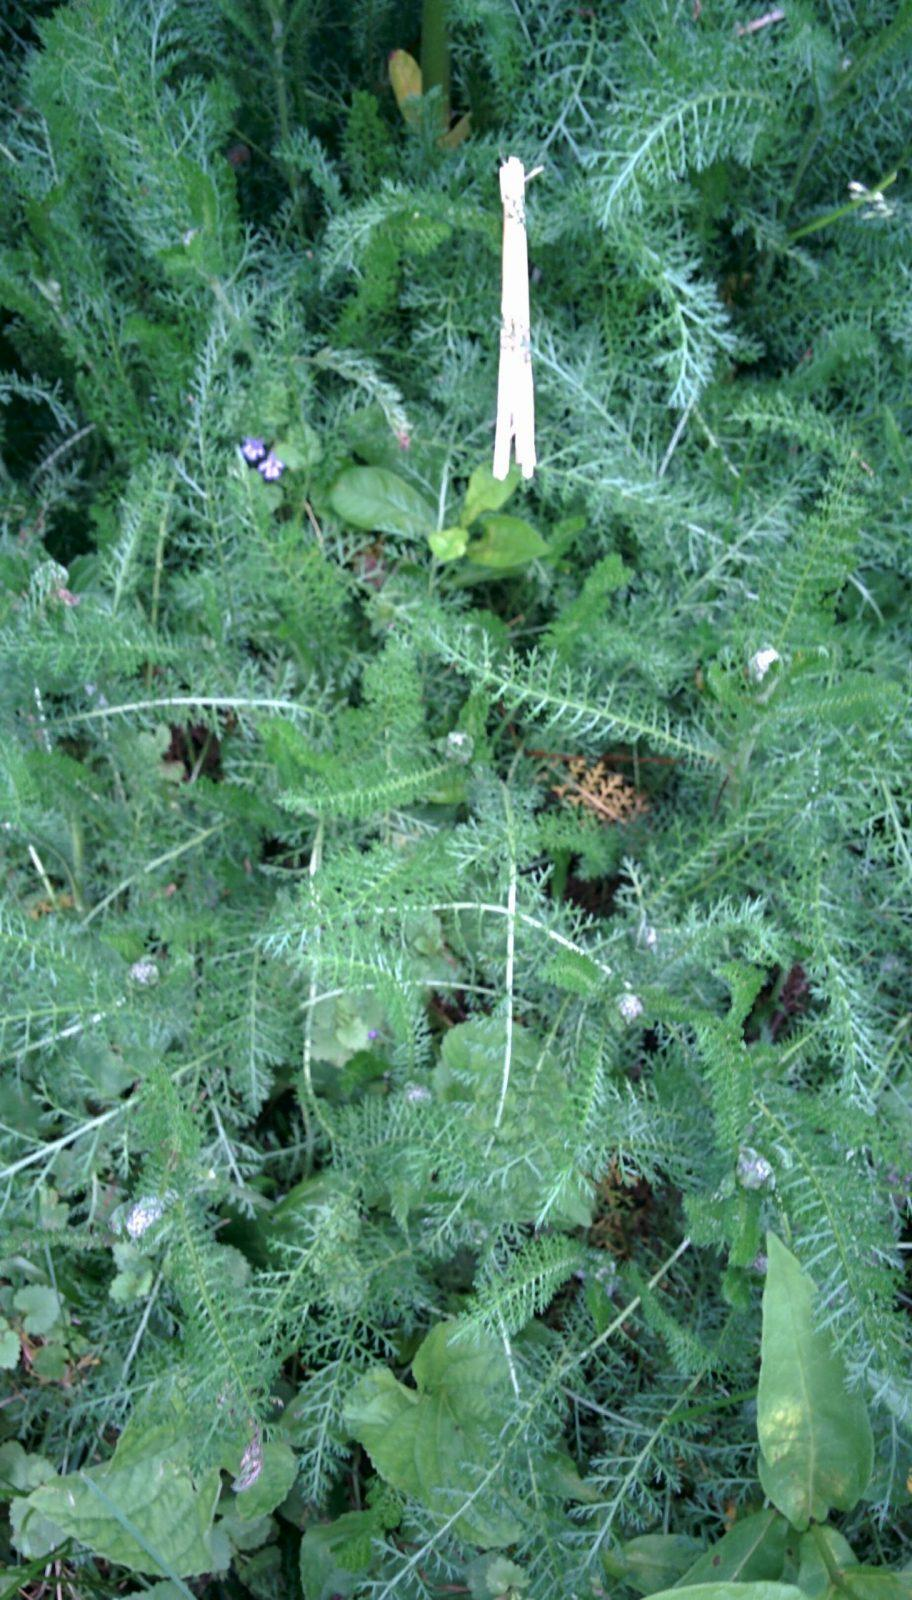 yarrow leaves with flower buds